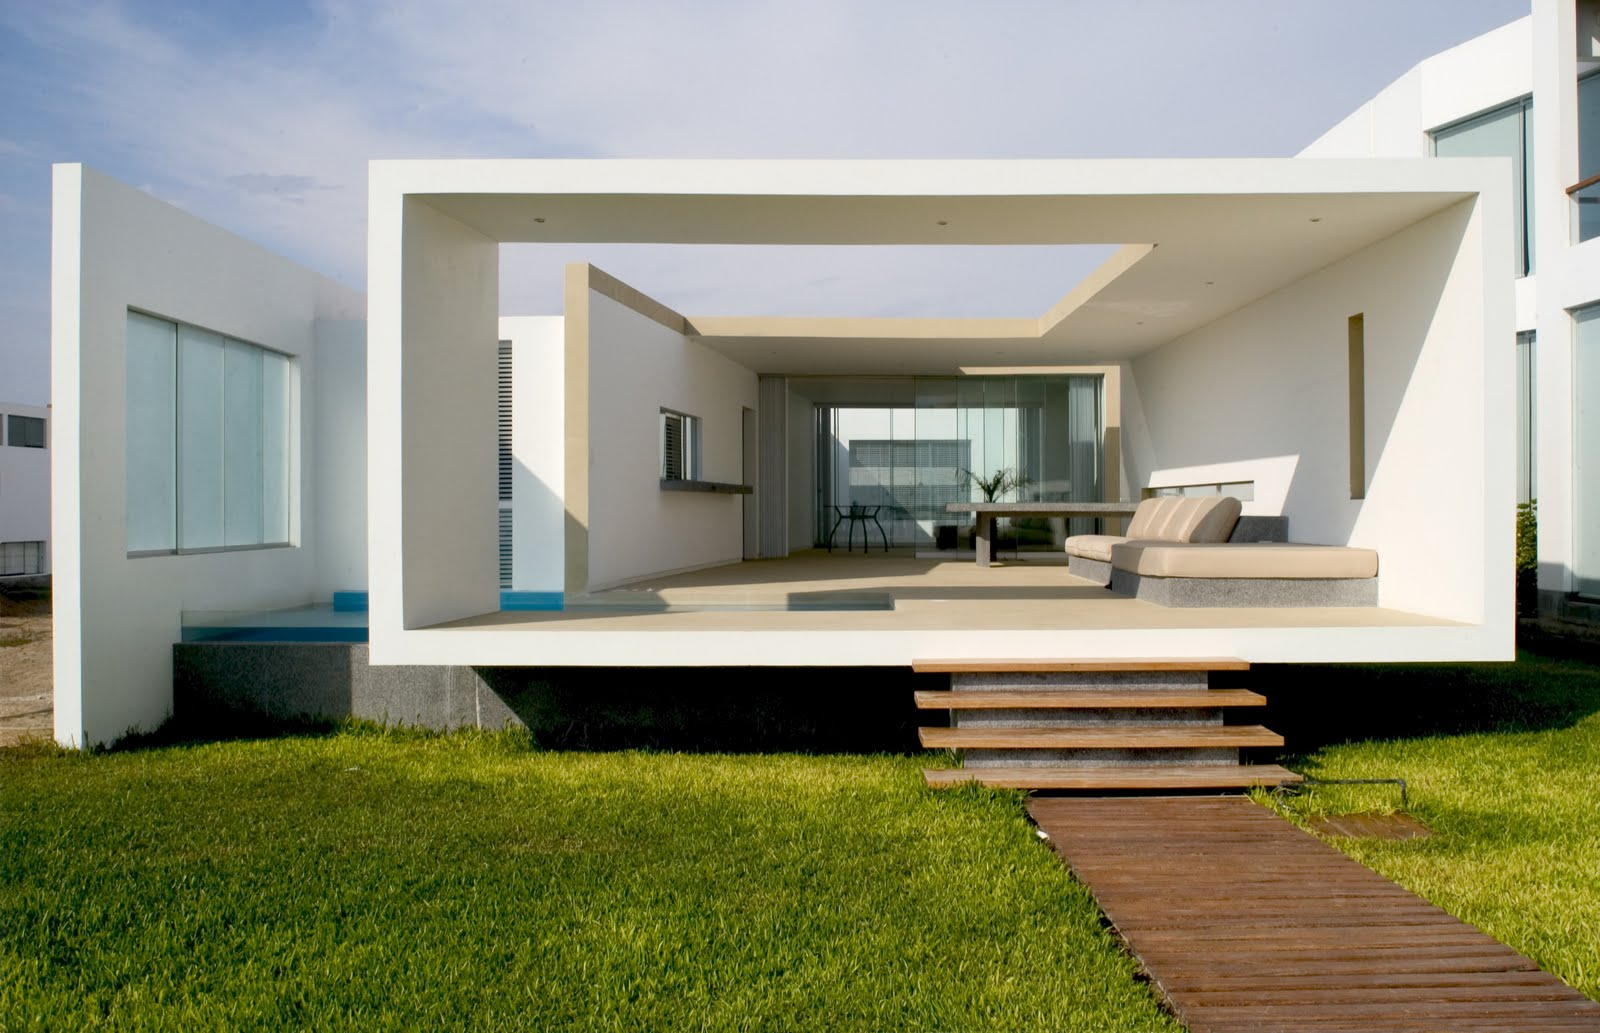 Habitar casa en playa las arenas for Design in casa